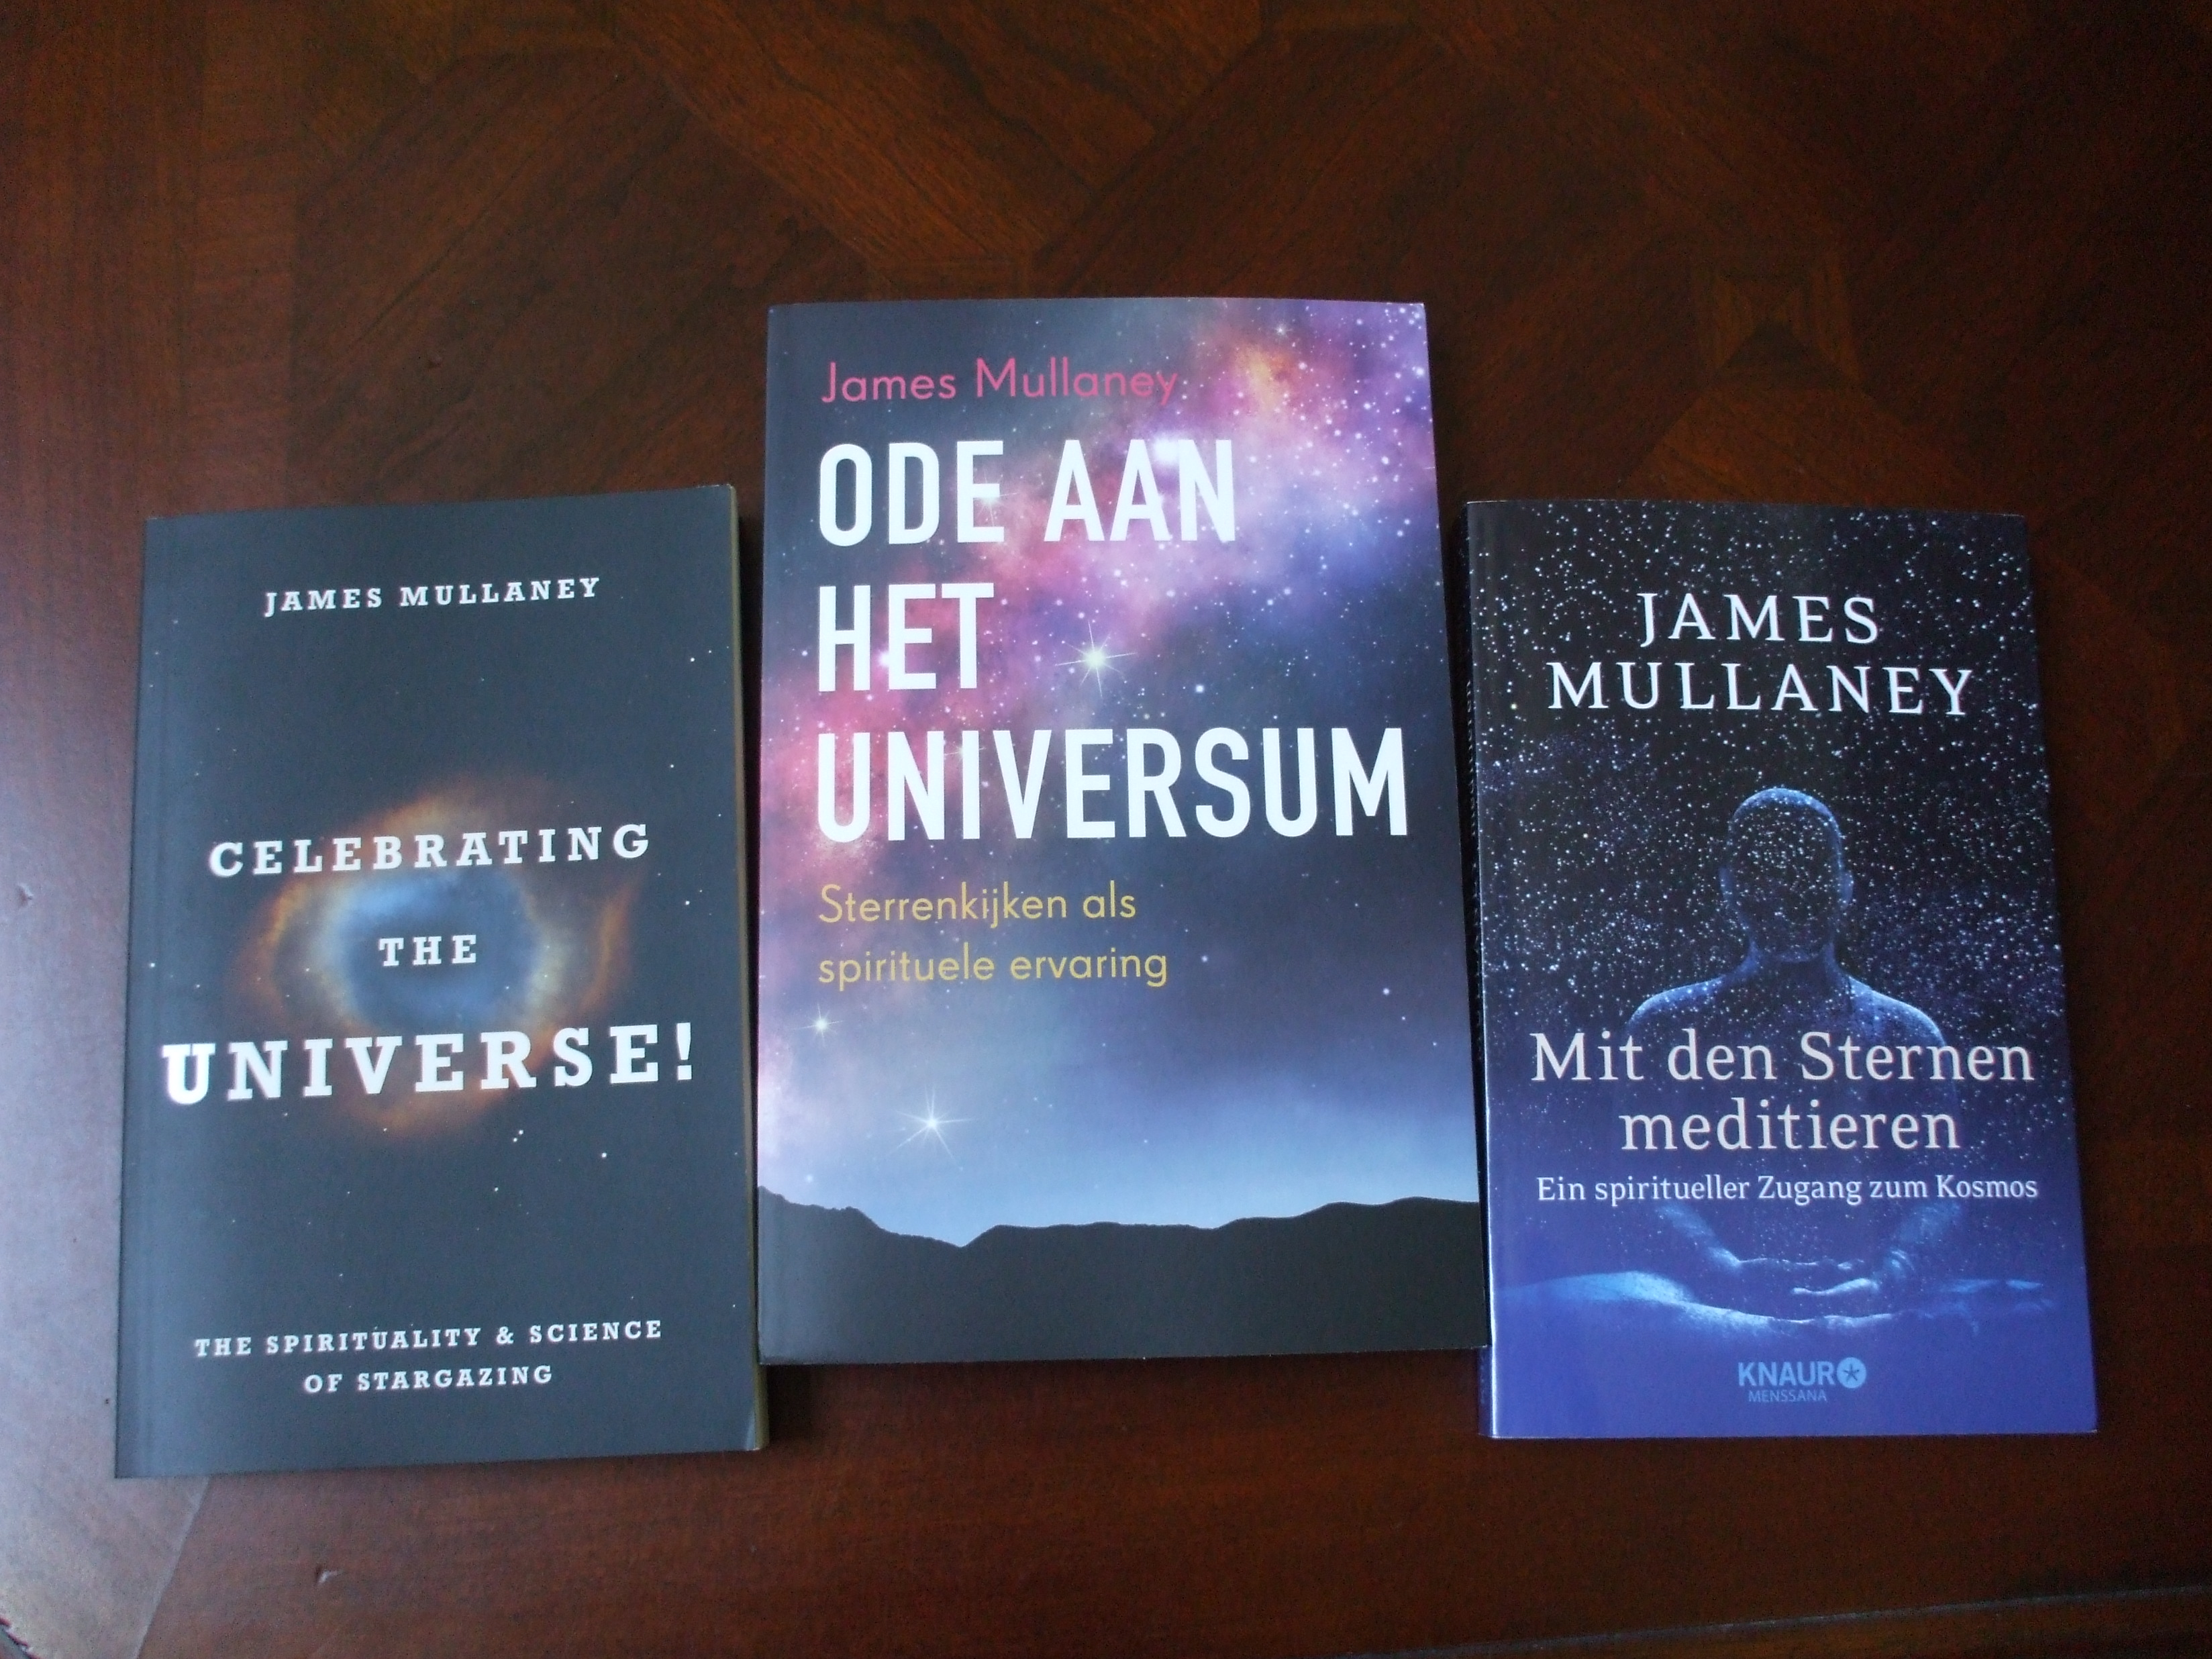 James Mullaney 'Celebrating the Universe!' book in English, Dutch, and German